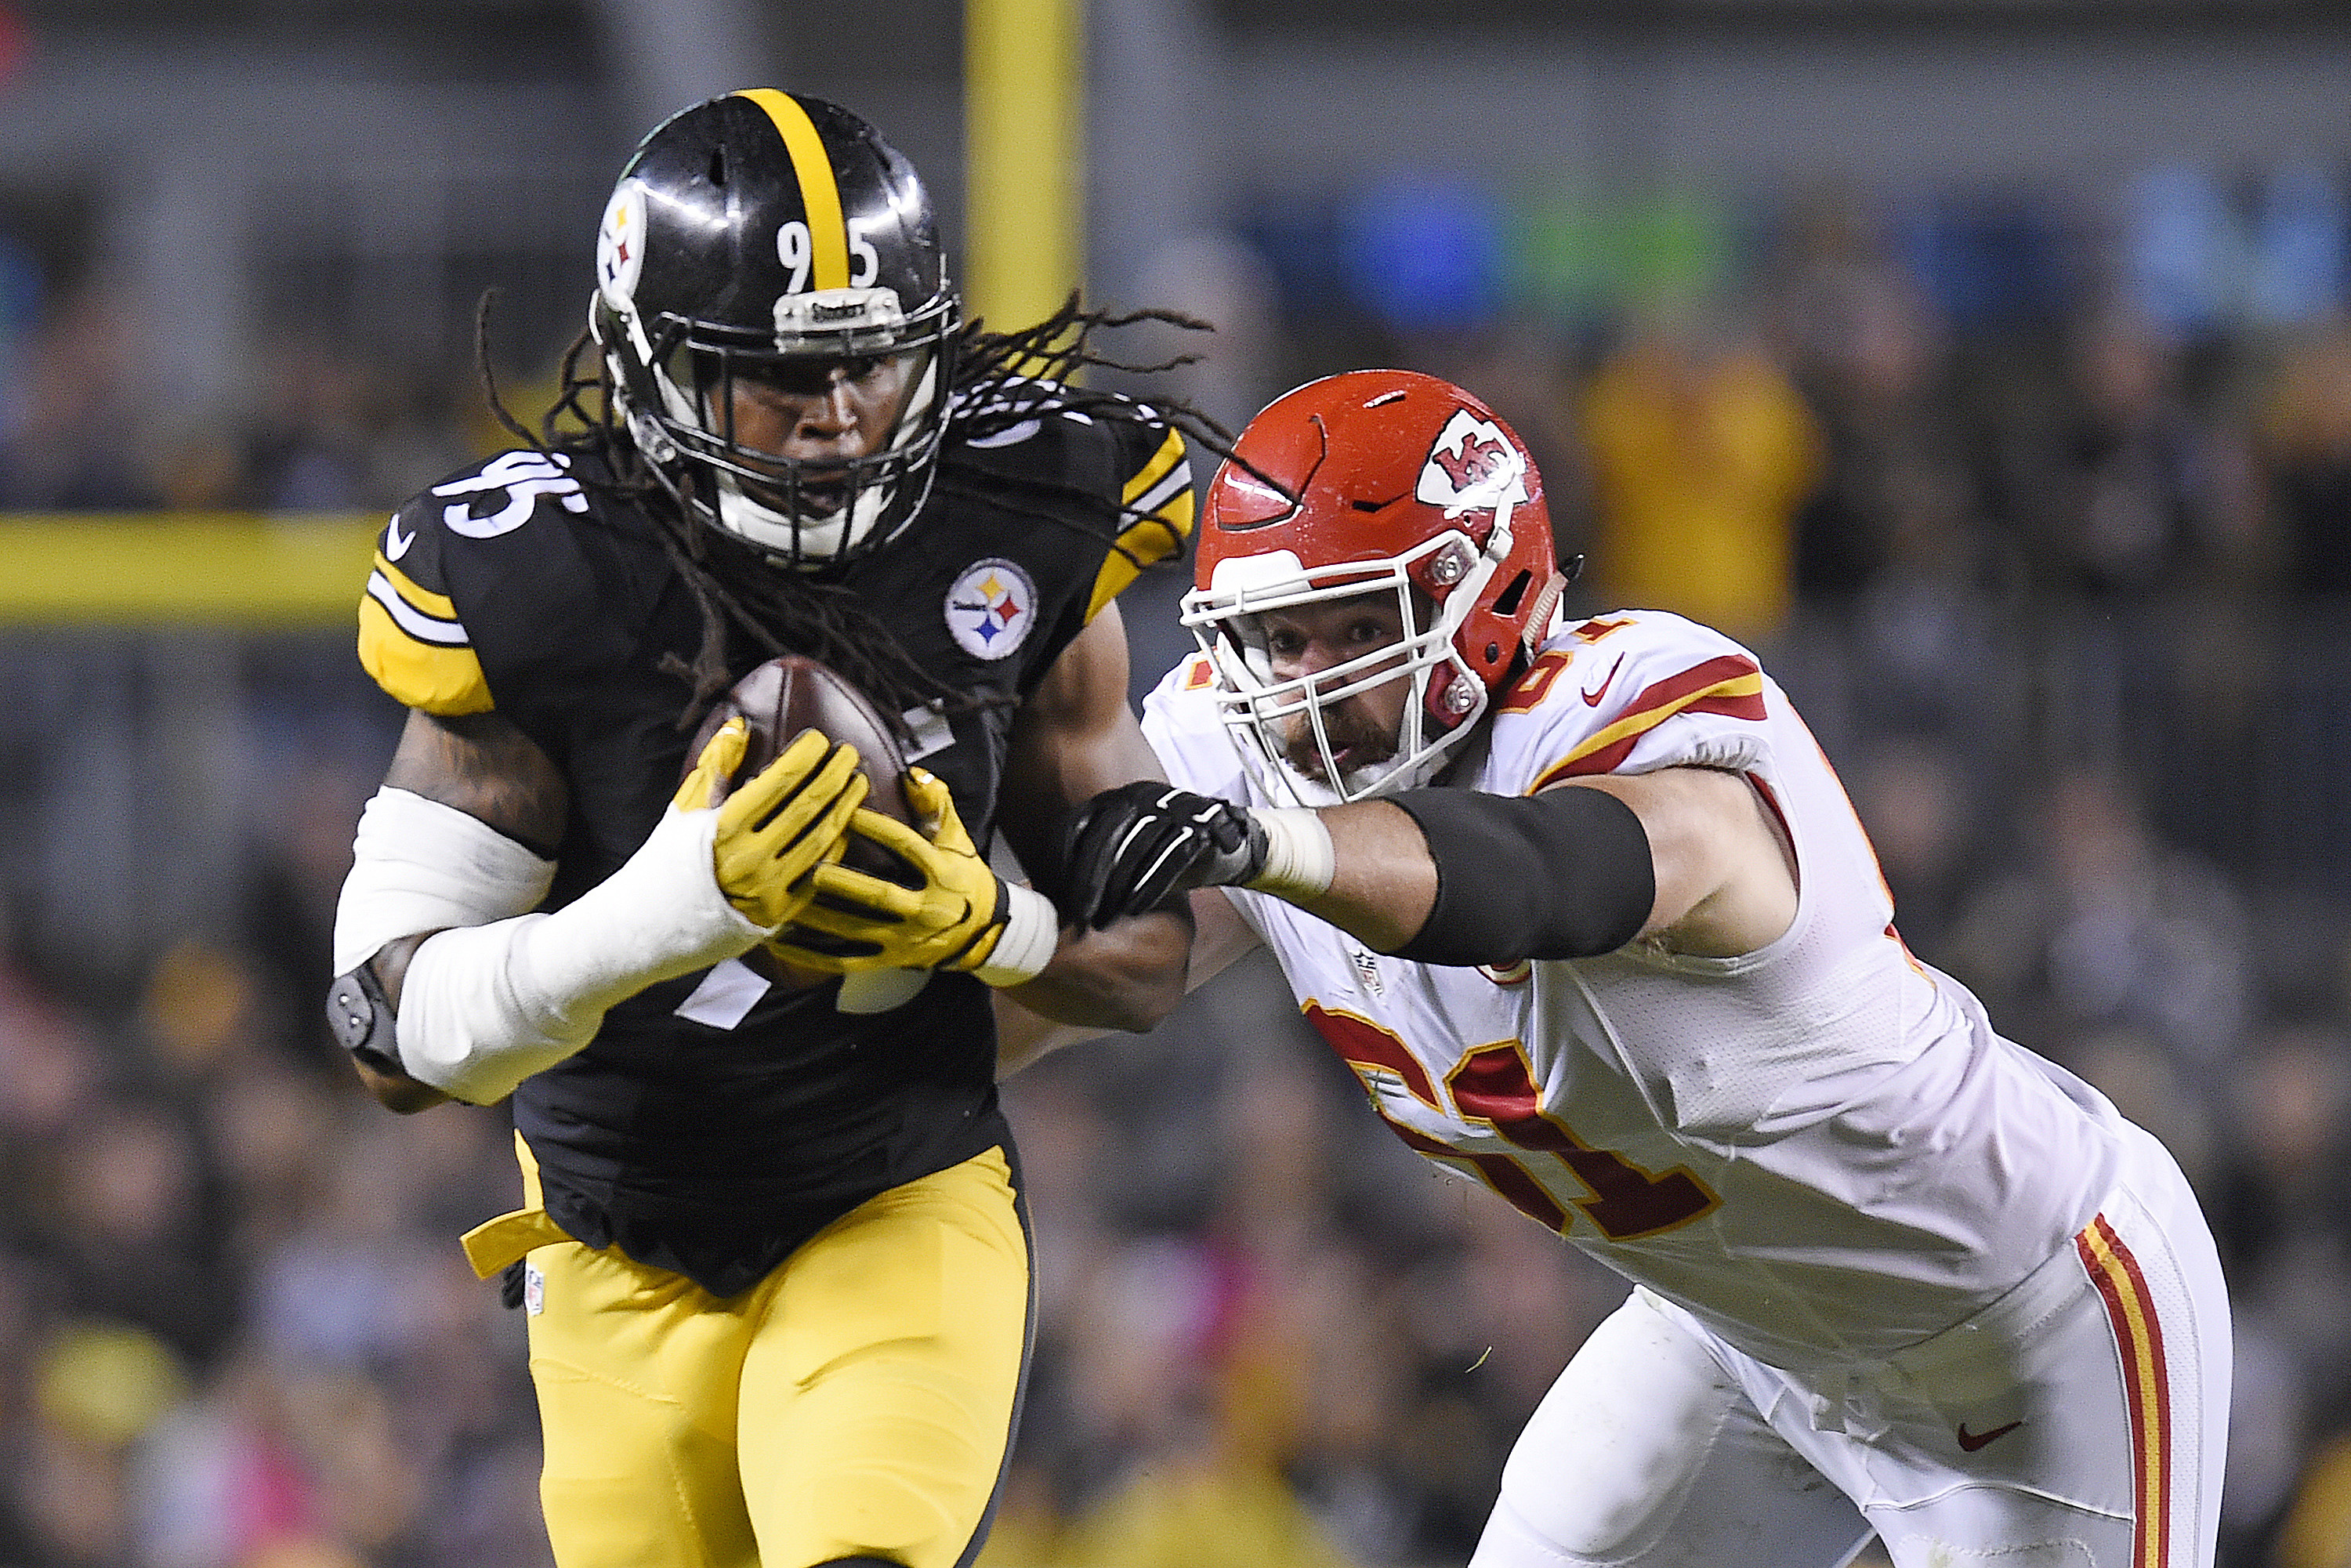 Pittsburgh Steelers outside linebacker Jarvis Jones (95) runs with an intercepted pass past Kansas City Chiefs center Mitch Morse (61) in the first half of an NFL football game in Pittsburgh, Sunday, Oct. 2, 2016. (AP Photo/Don Wright)